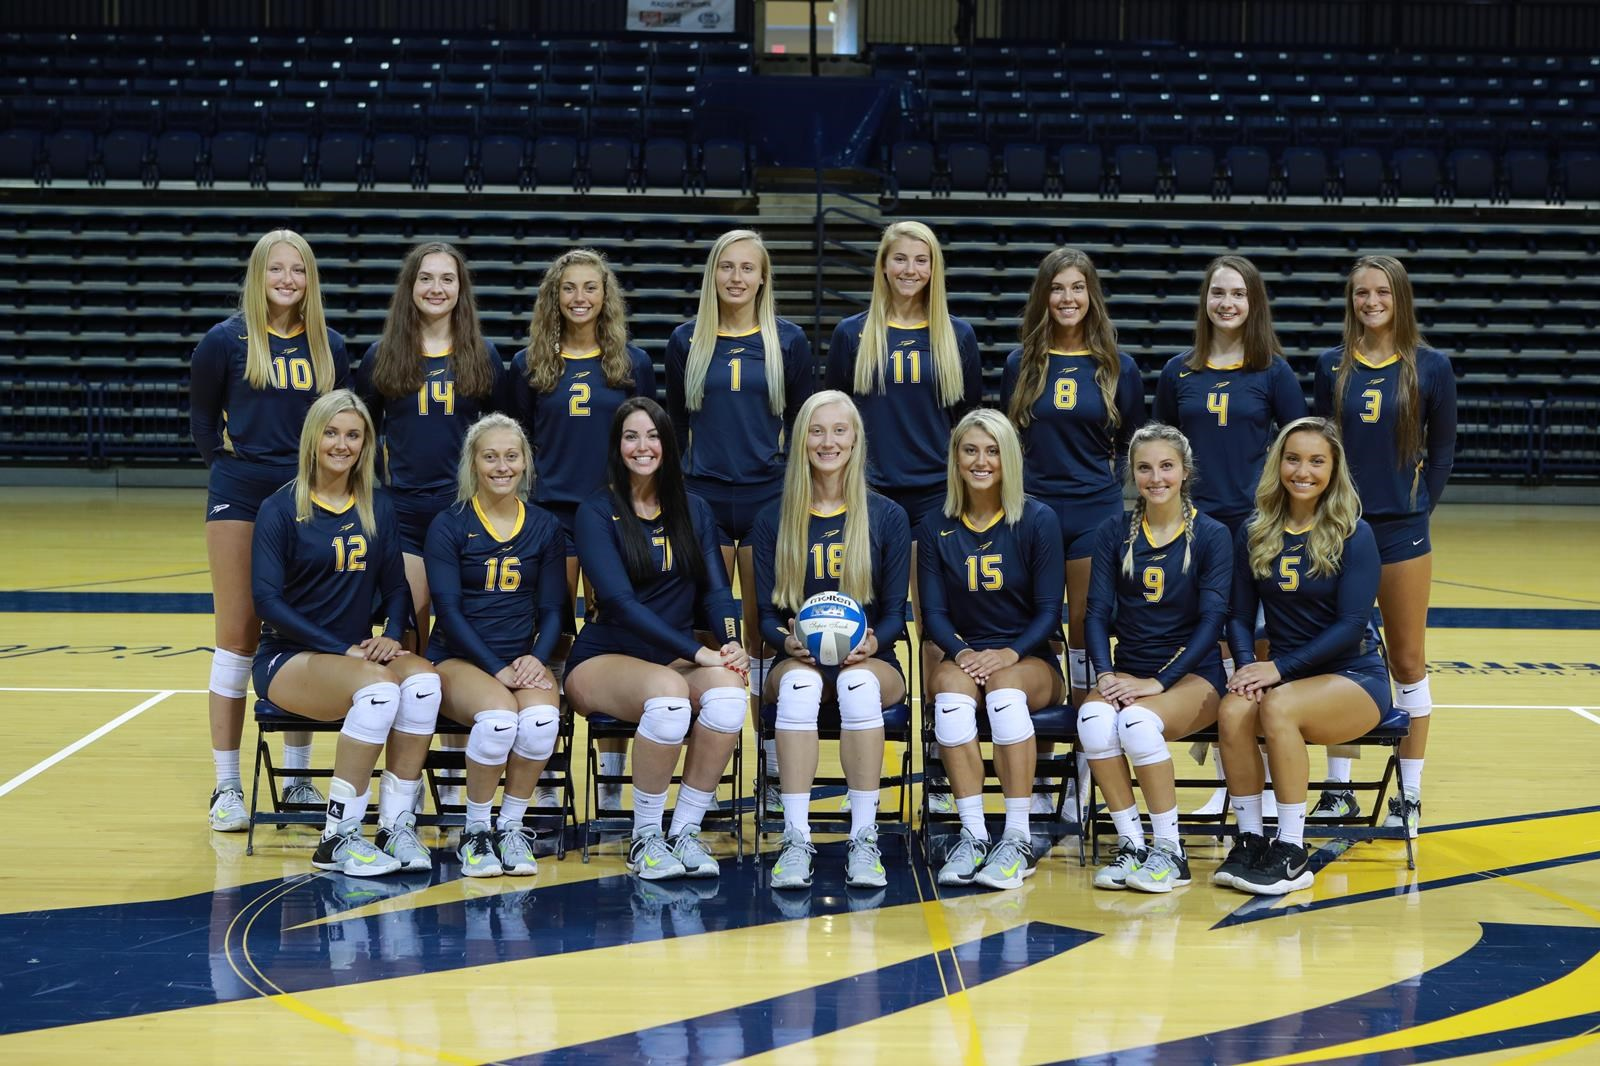 2018 Women S Volleyball Roster University Of Toledo Athletics